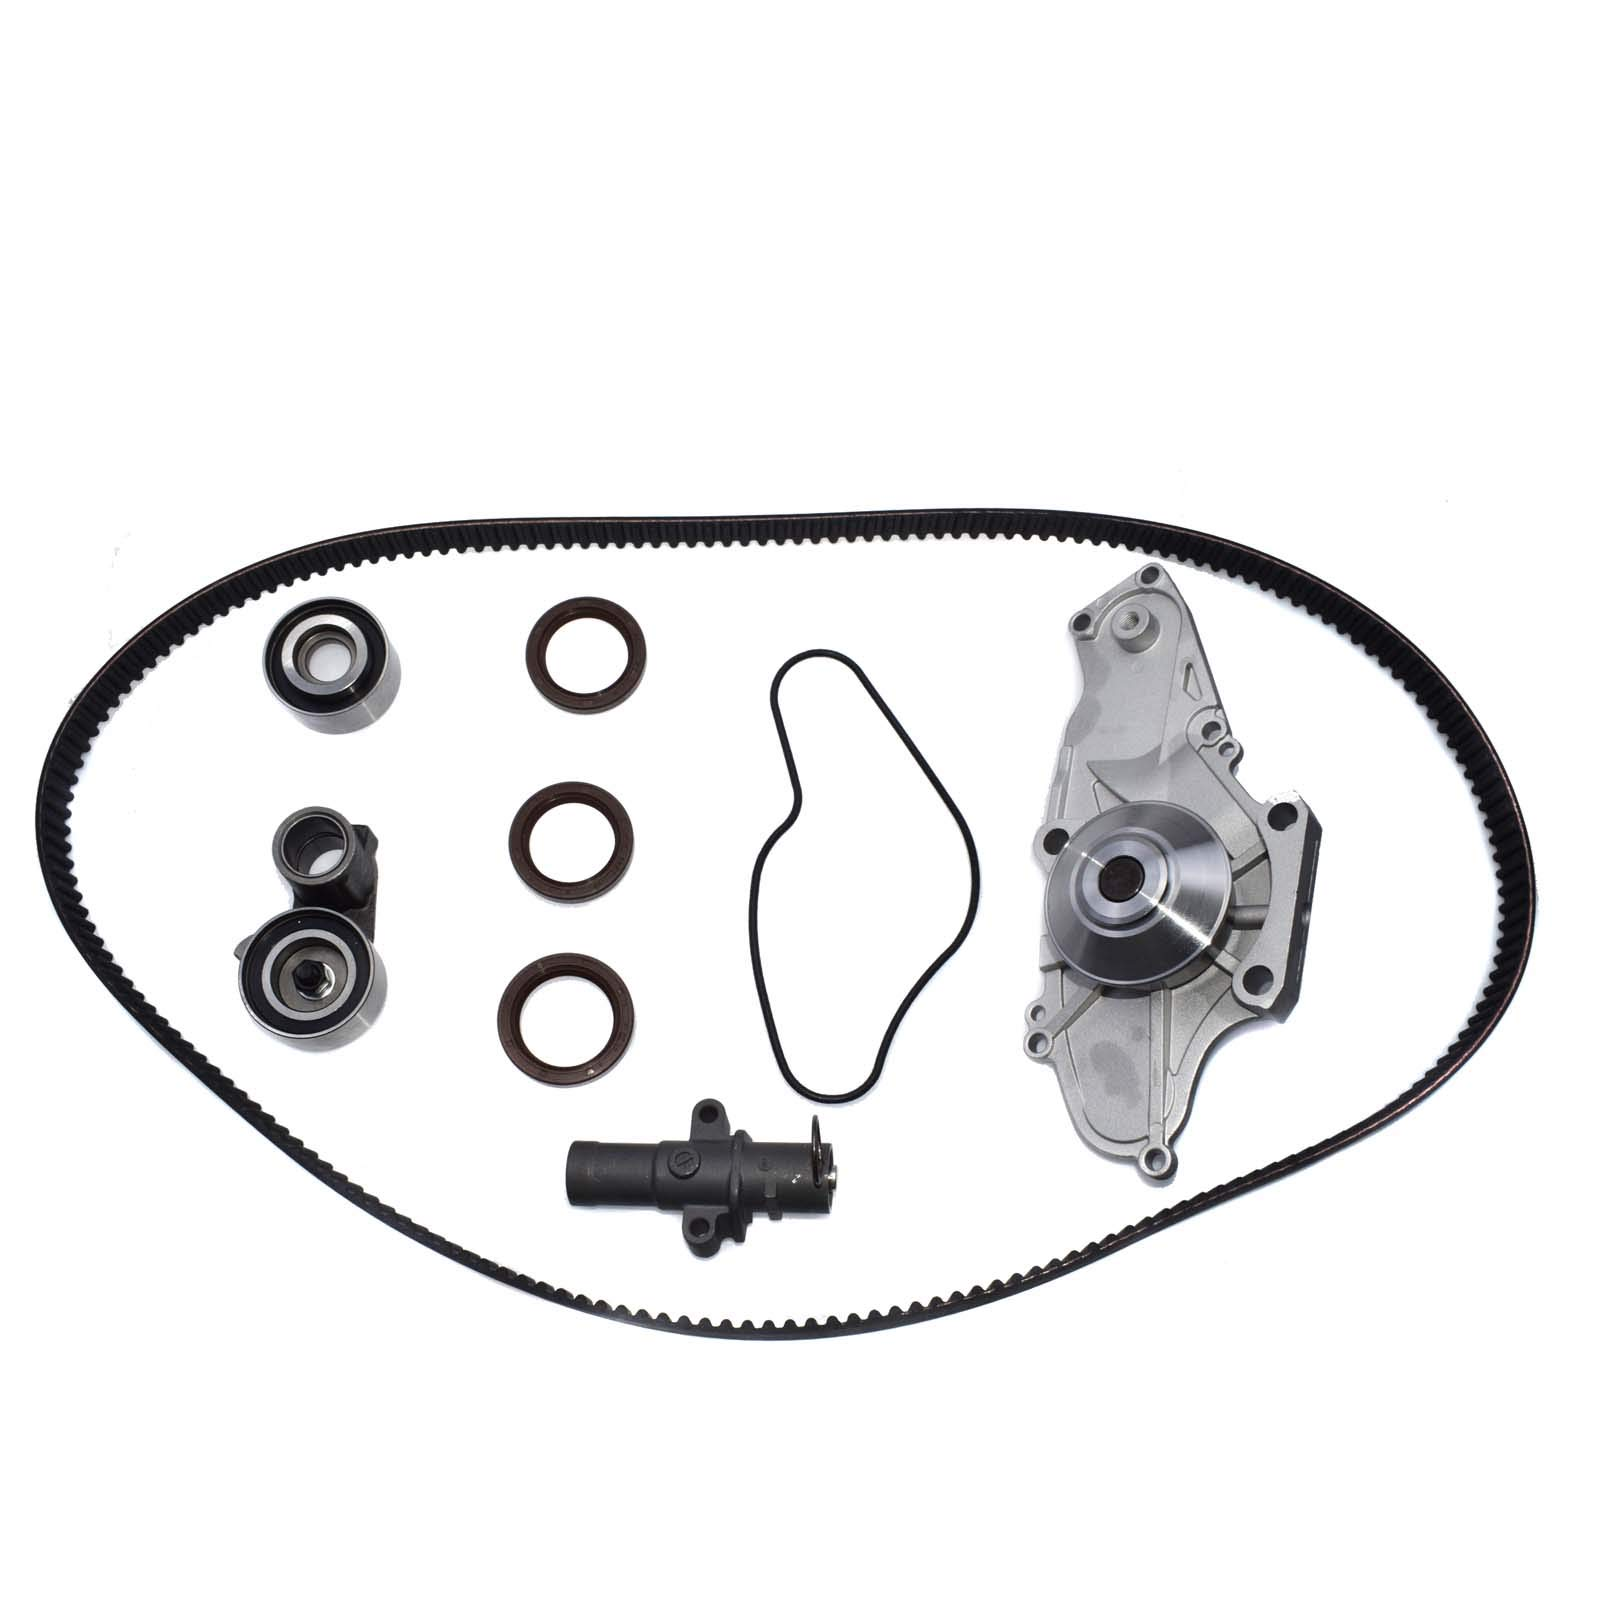 Timing Belt Water Pump Kit For Honda Acura MDX RL TL 14400-RCA-A01 14520-RCA-A01 by eGang Auto